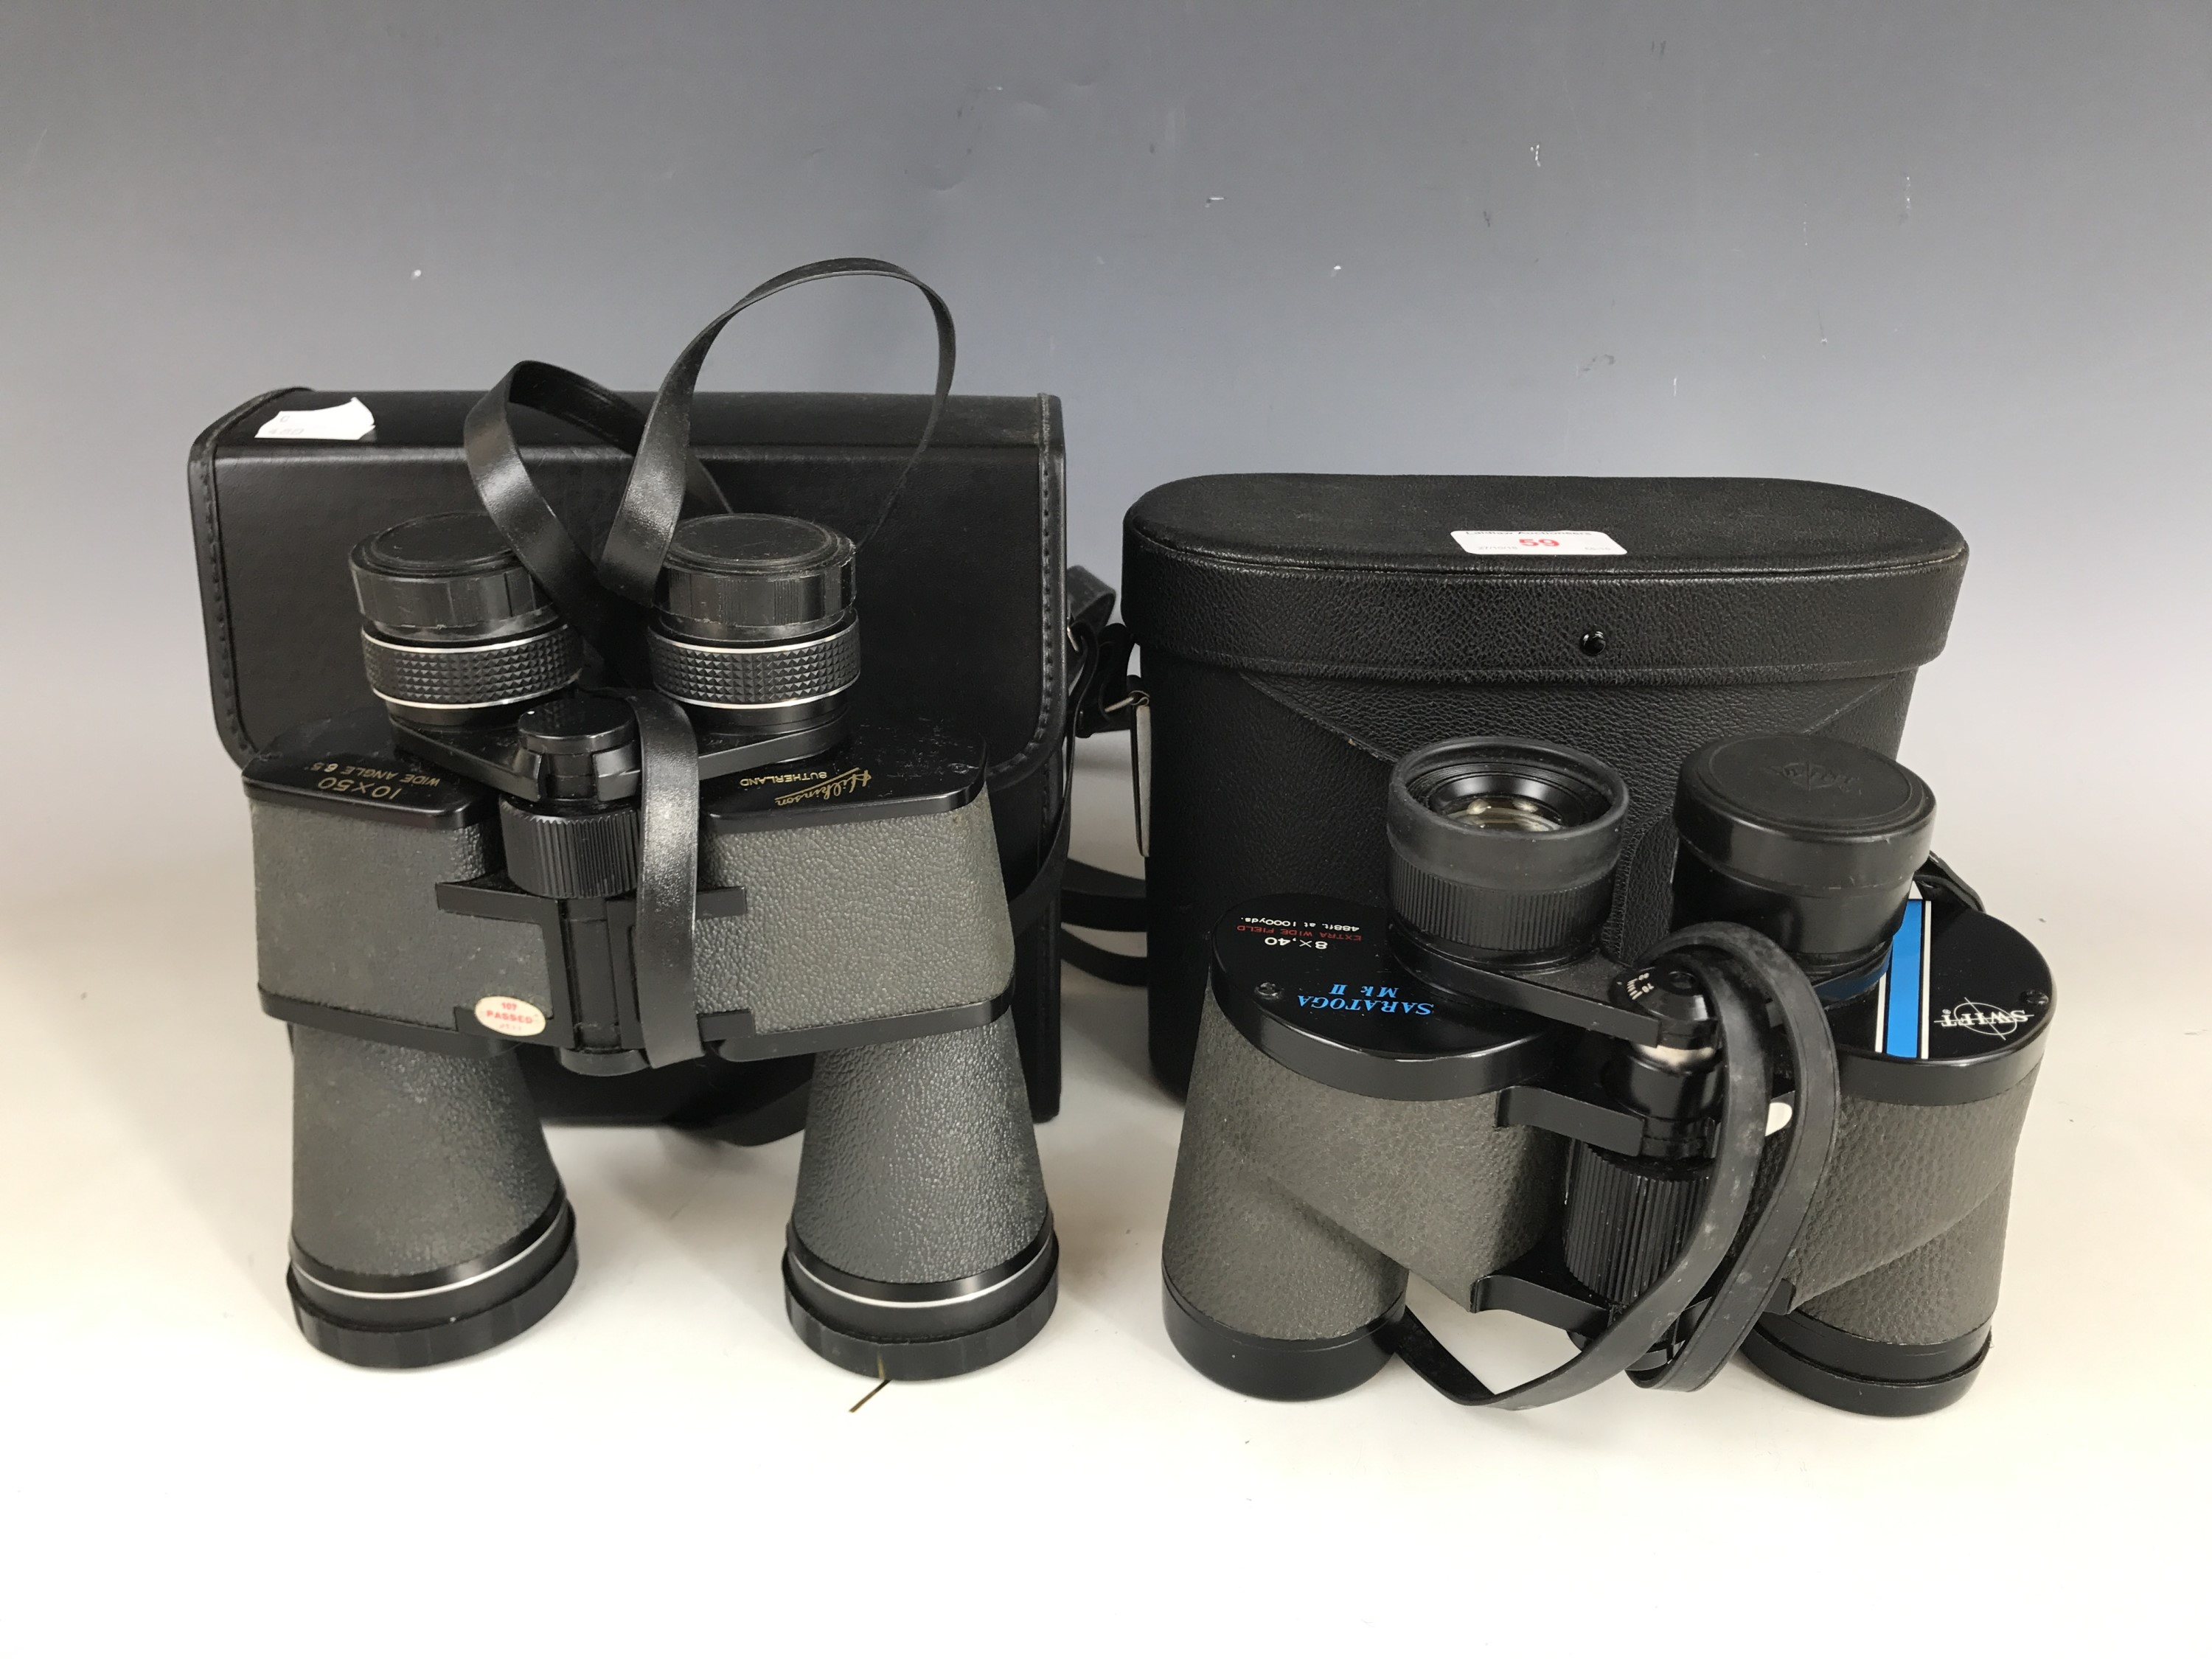 Lot 59 - A cased pair of Swift Saratoga MKII 8 x 40 binoculars together with a cased pair of Hilkinson 10 x